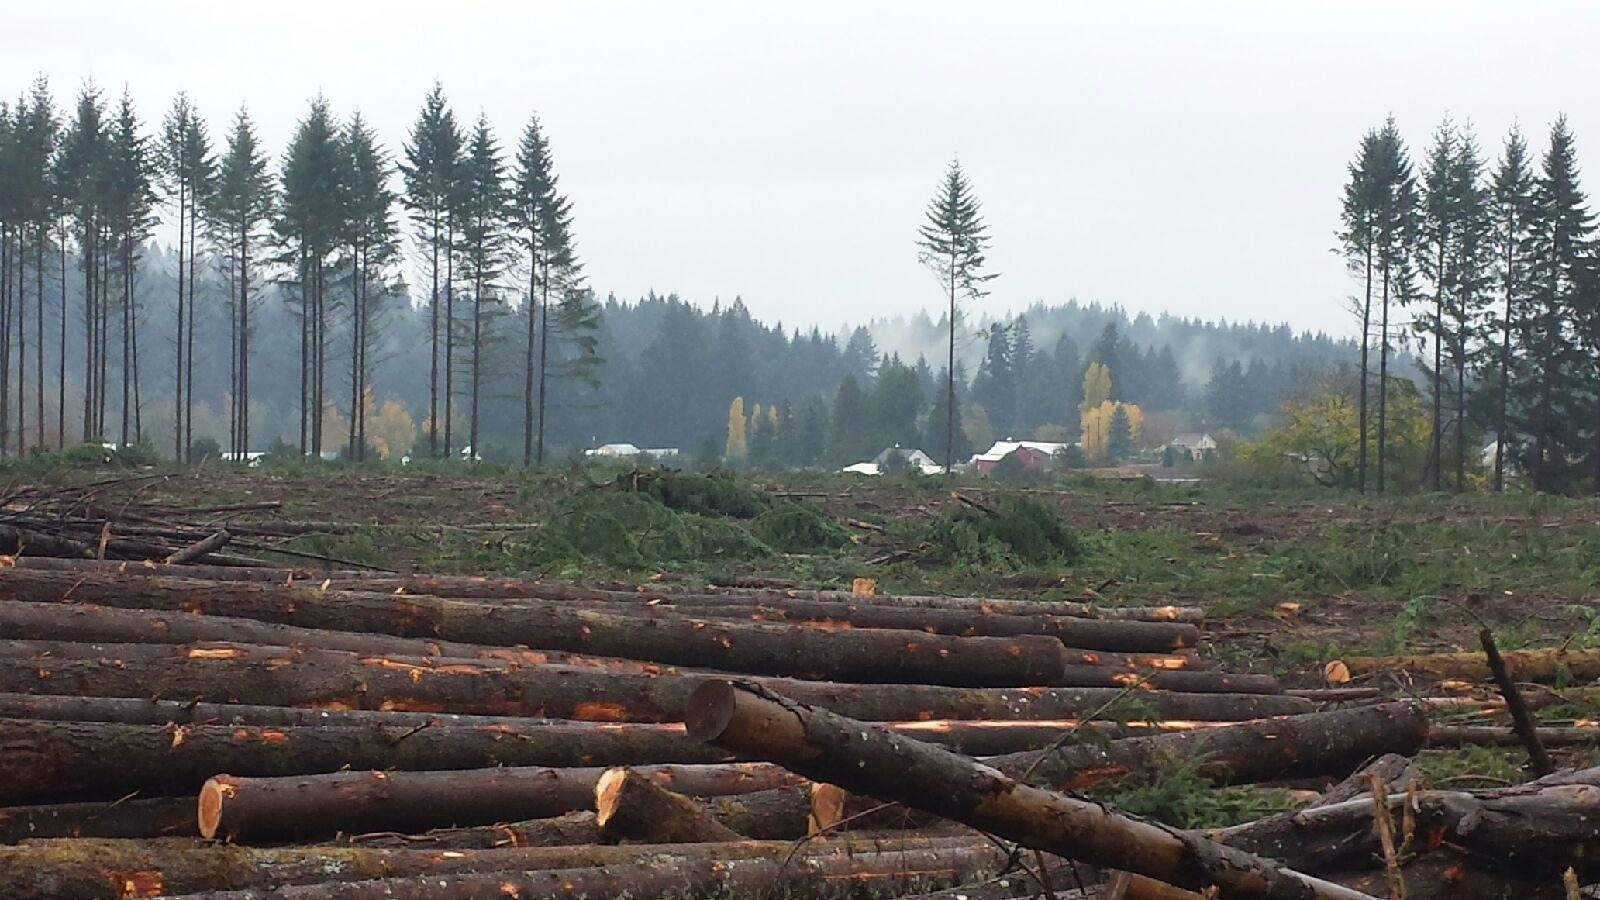 industrial-tree-clearing-equipment-oregon-logs